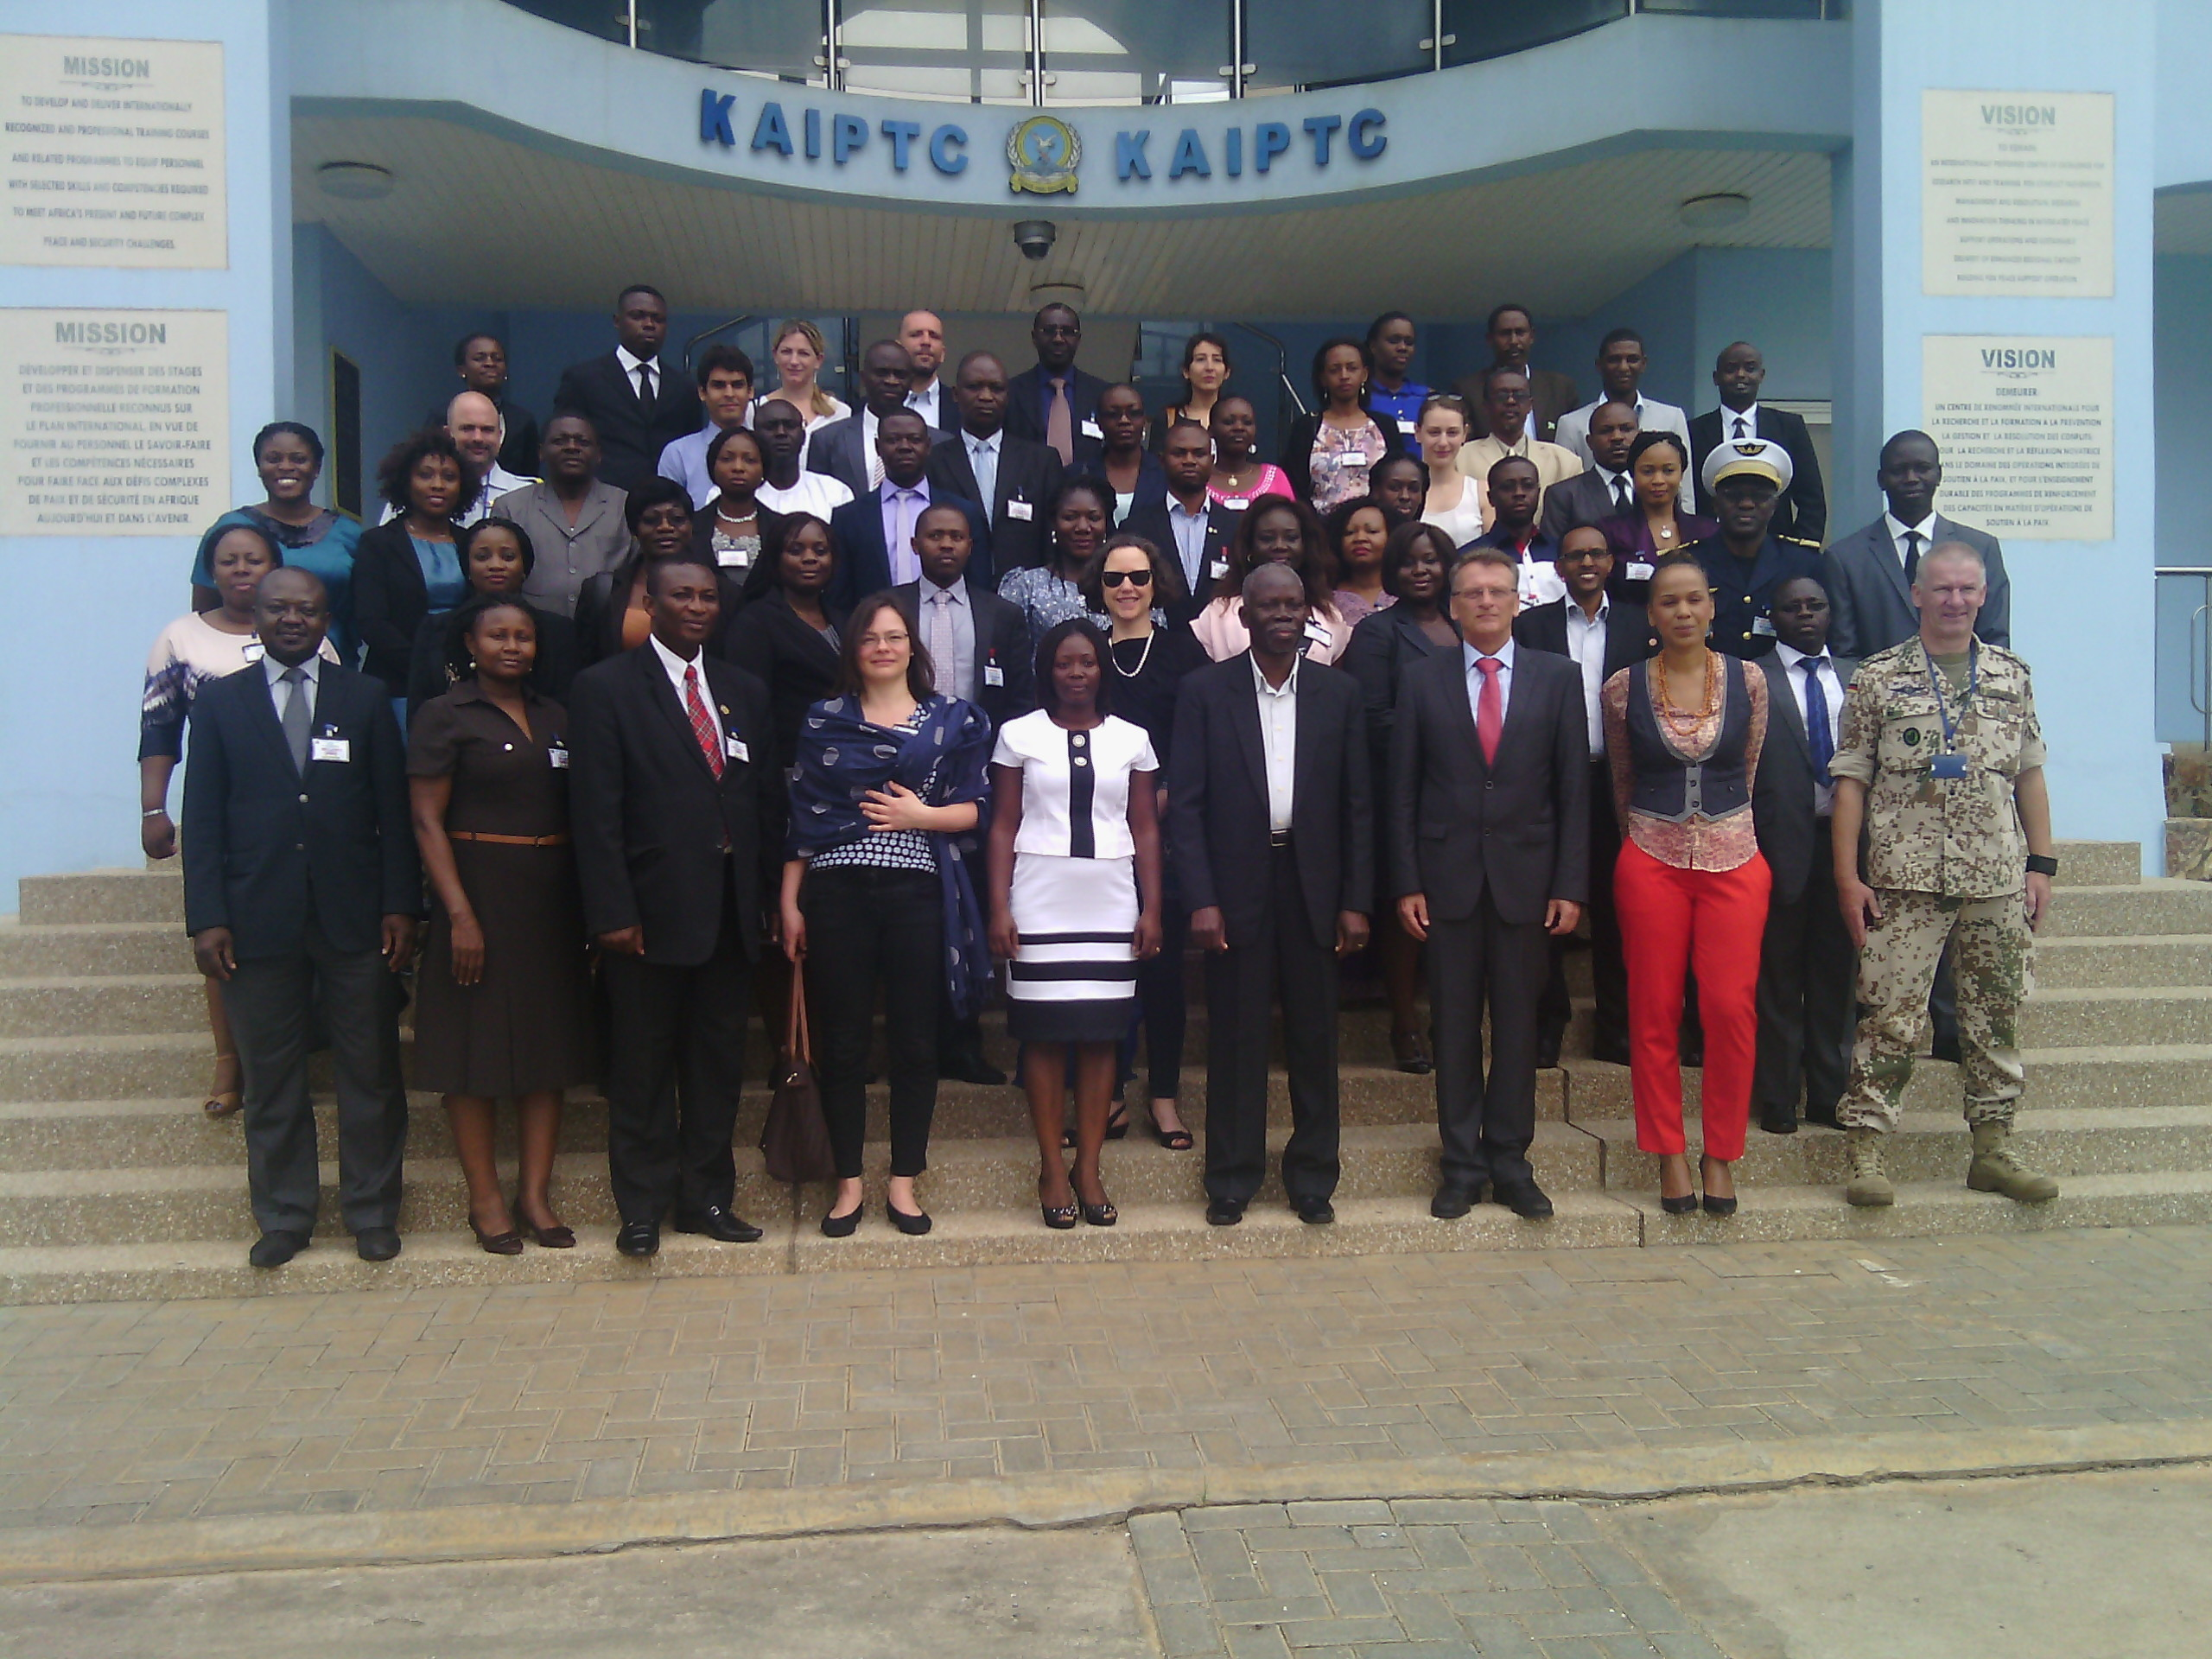 KAIPTC group photo of dignitaries and participants